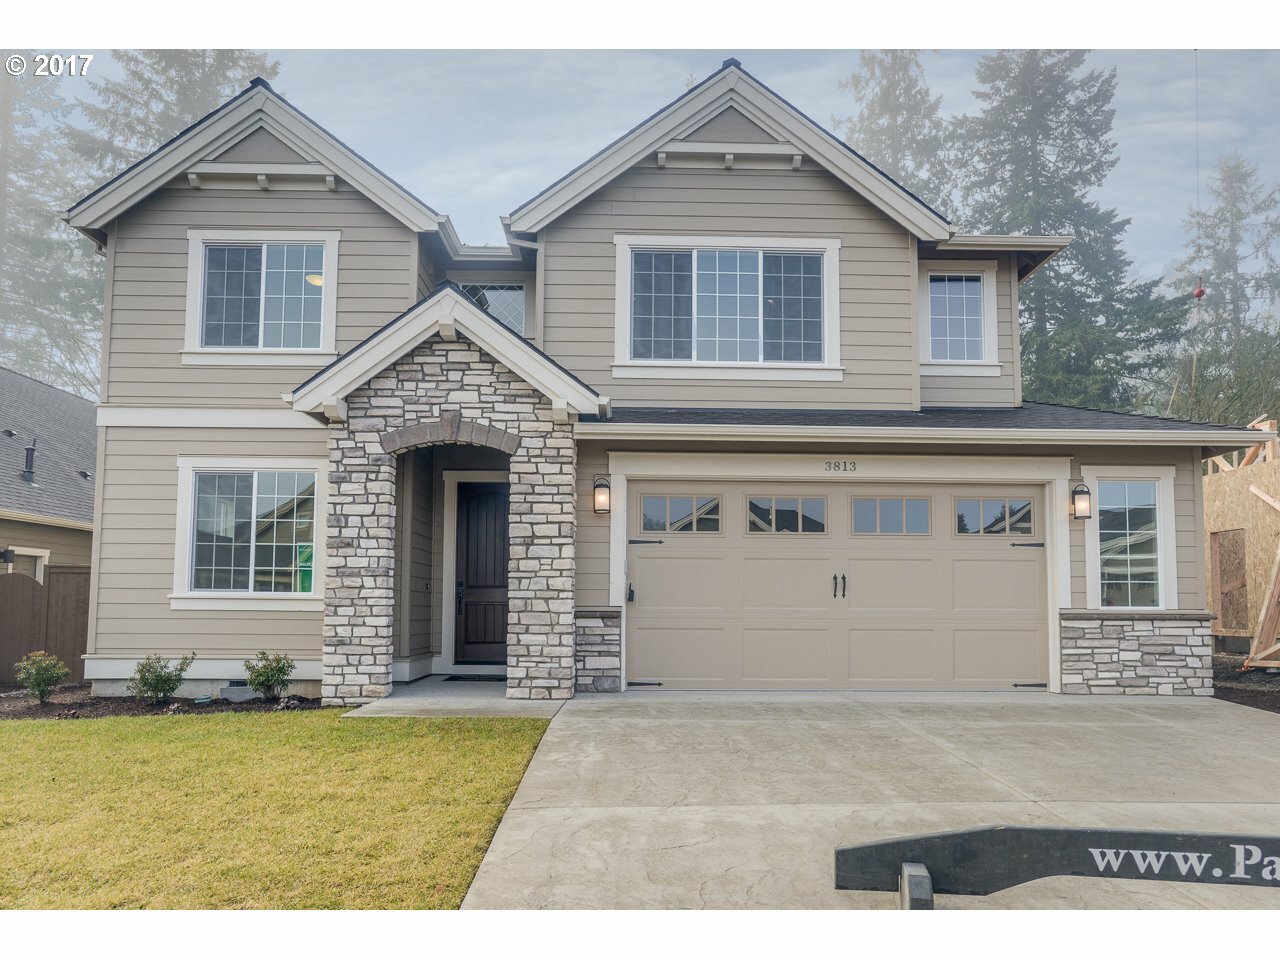 3813 Se Pipers Dr, Hillsboro, OR - USA (photo 1)